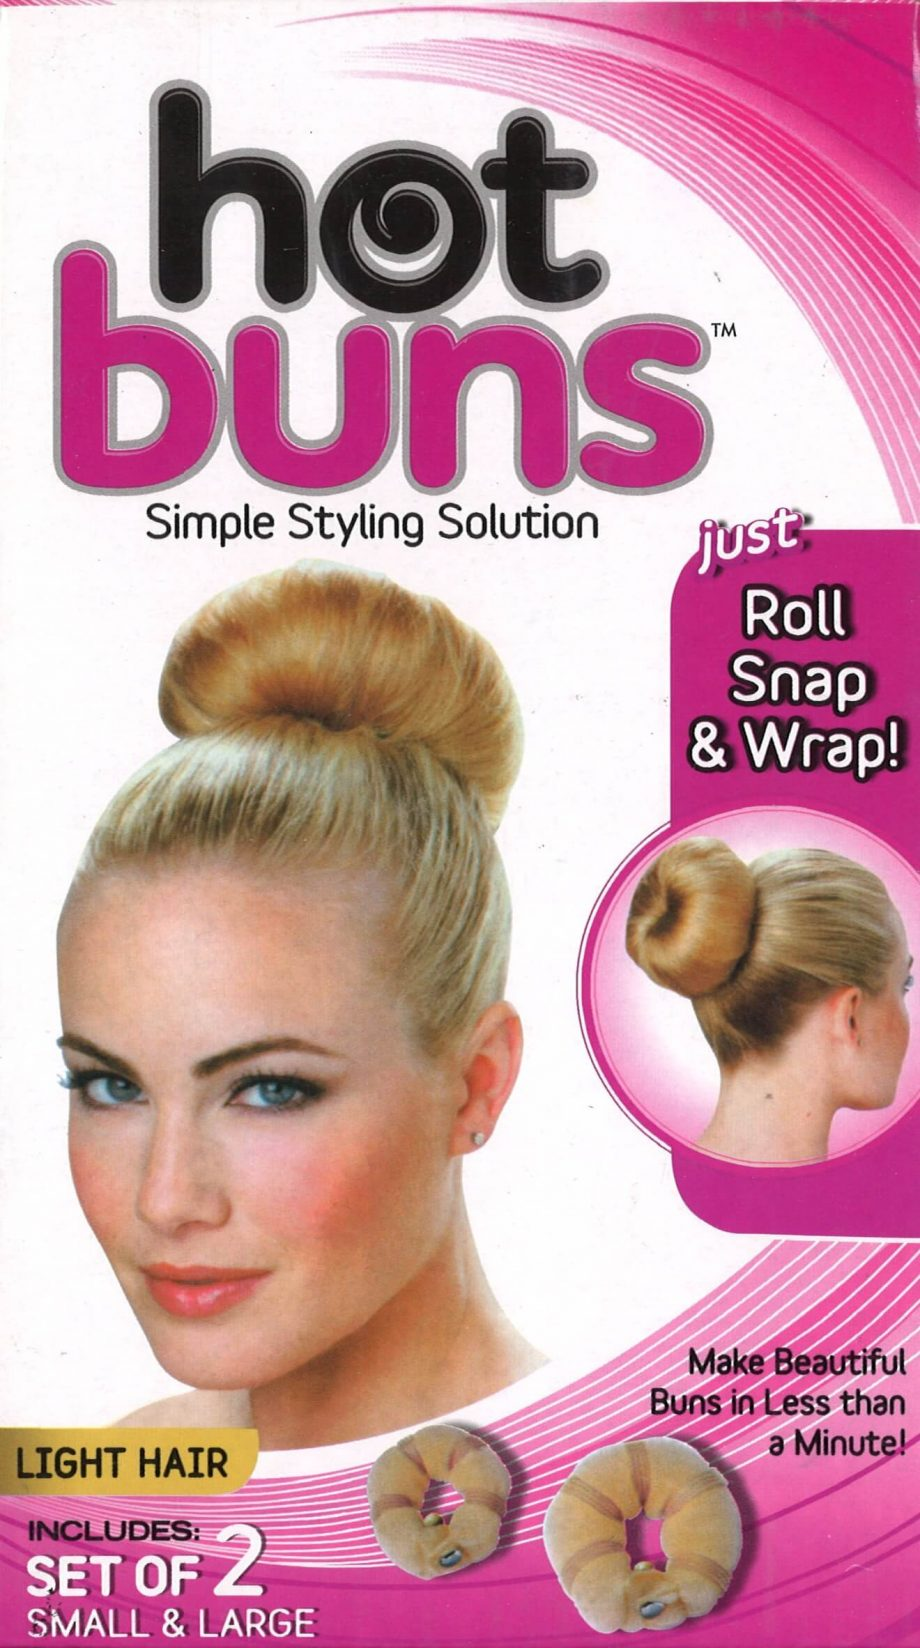 APG - PAQ. OF 2 HOT BUNS SMALL & LARGE LIGHT HAIR, JUST ROLL SNAP & WRAP, SIMPLE STYLING SOLUTION, ITEM NO. 4892